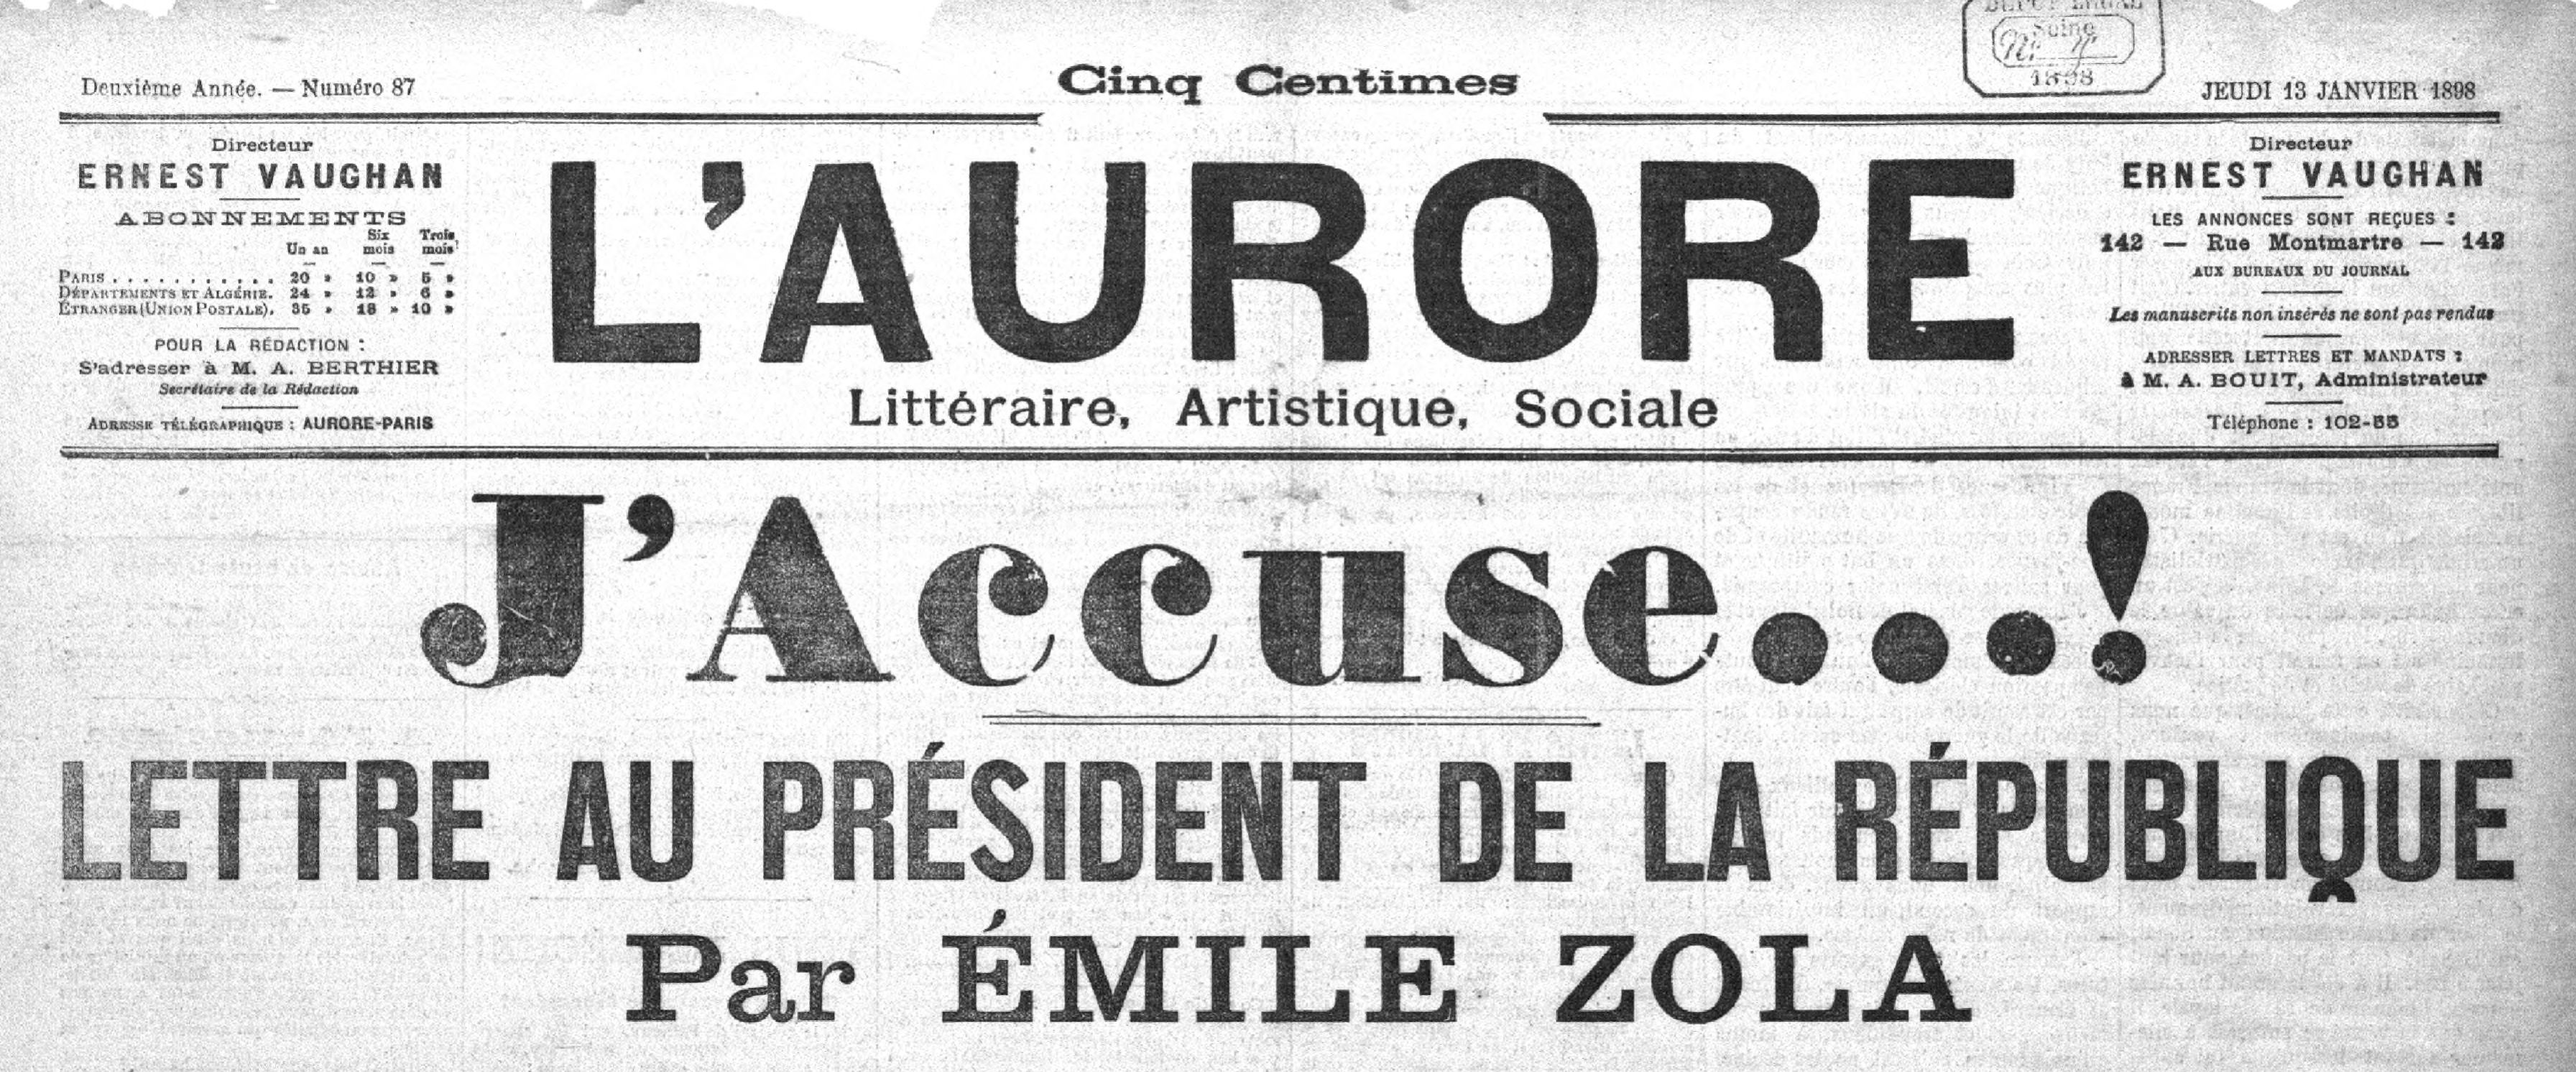 J'accuse: The Dreyfus-Affair in historical newspapers ...